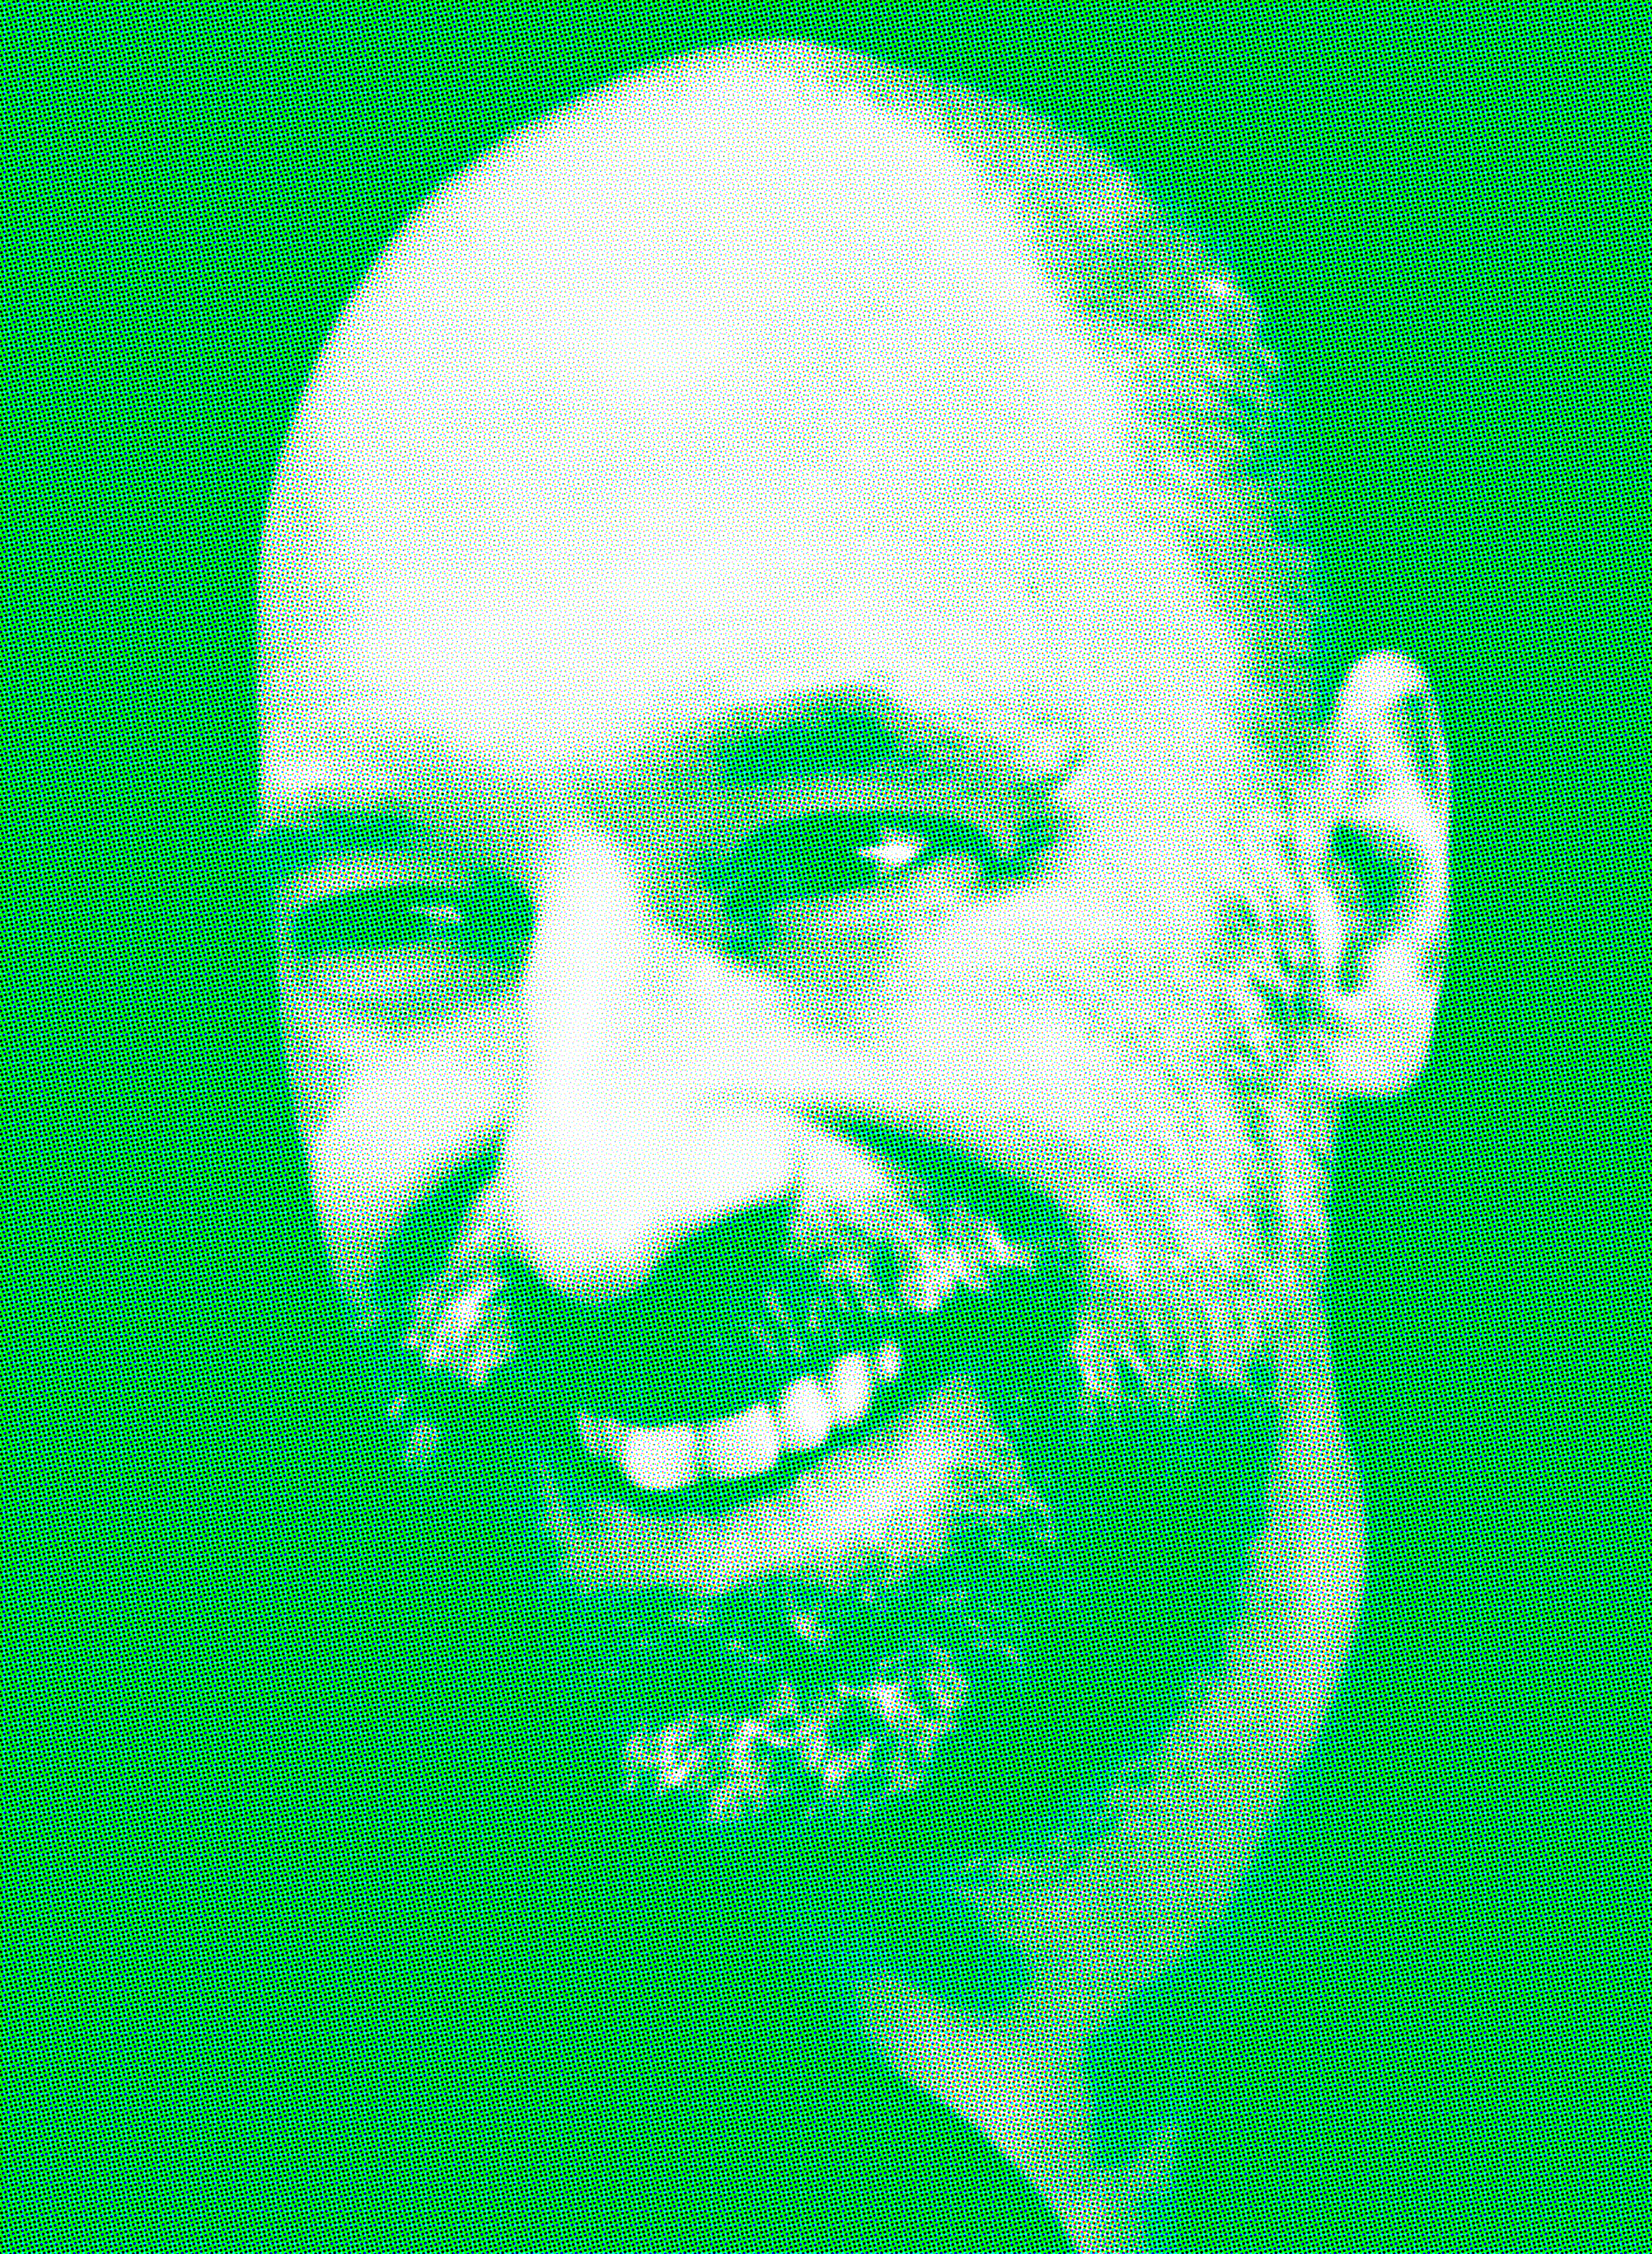 MJF-Author-Photo-HIGHRES_Green_Halftone.png